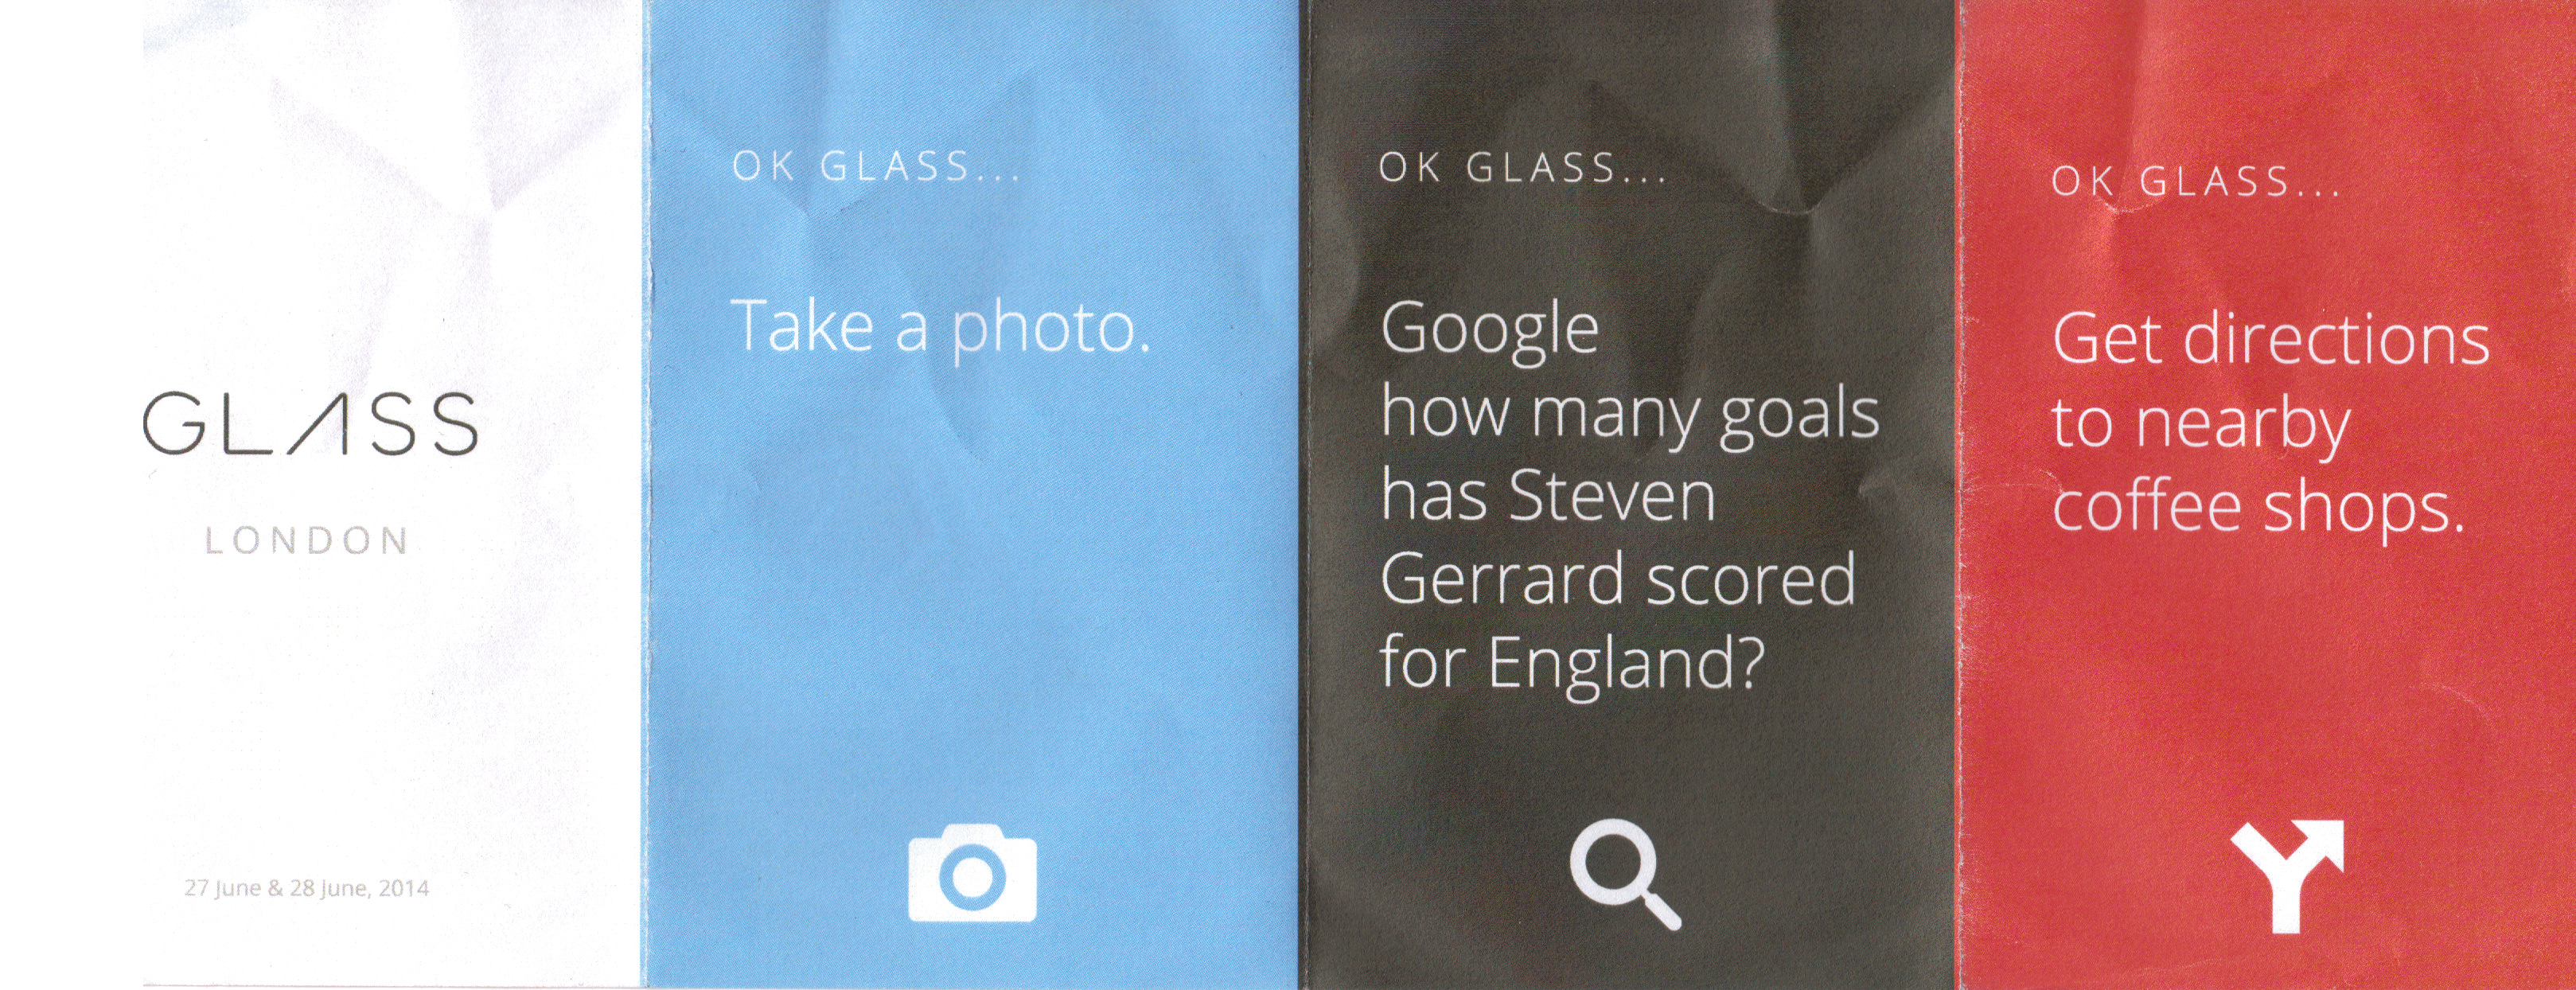 google glass booklet copy